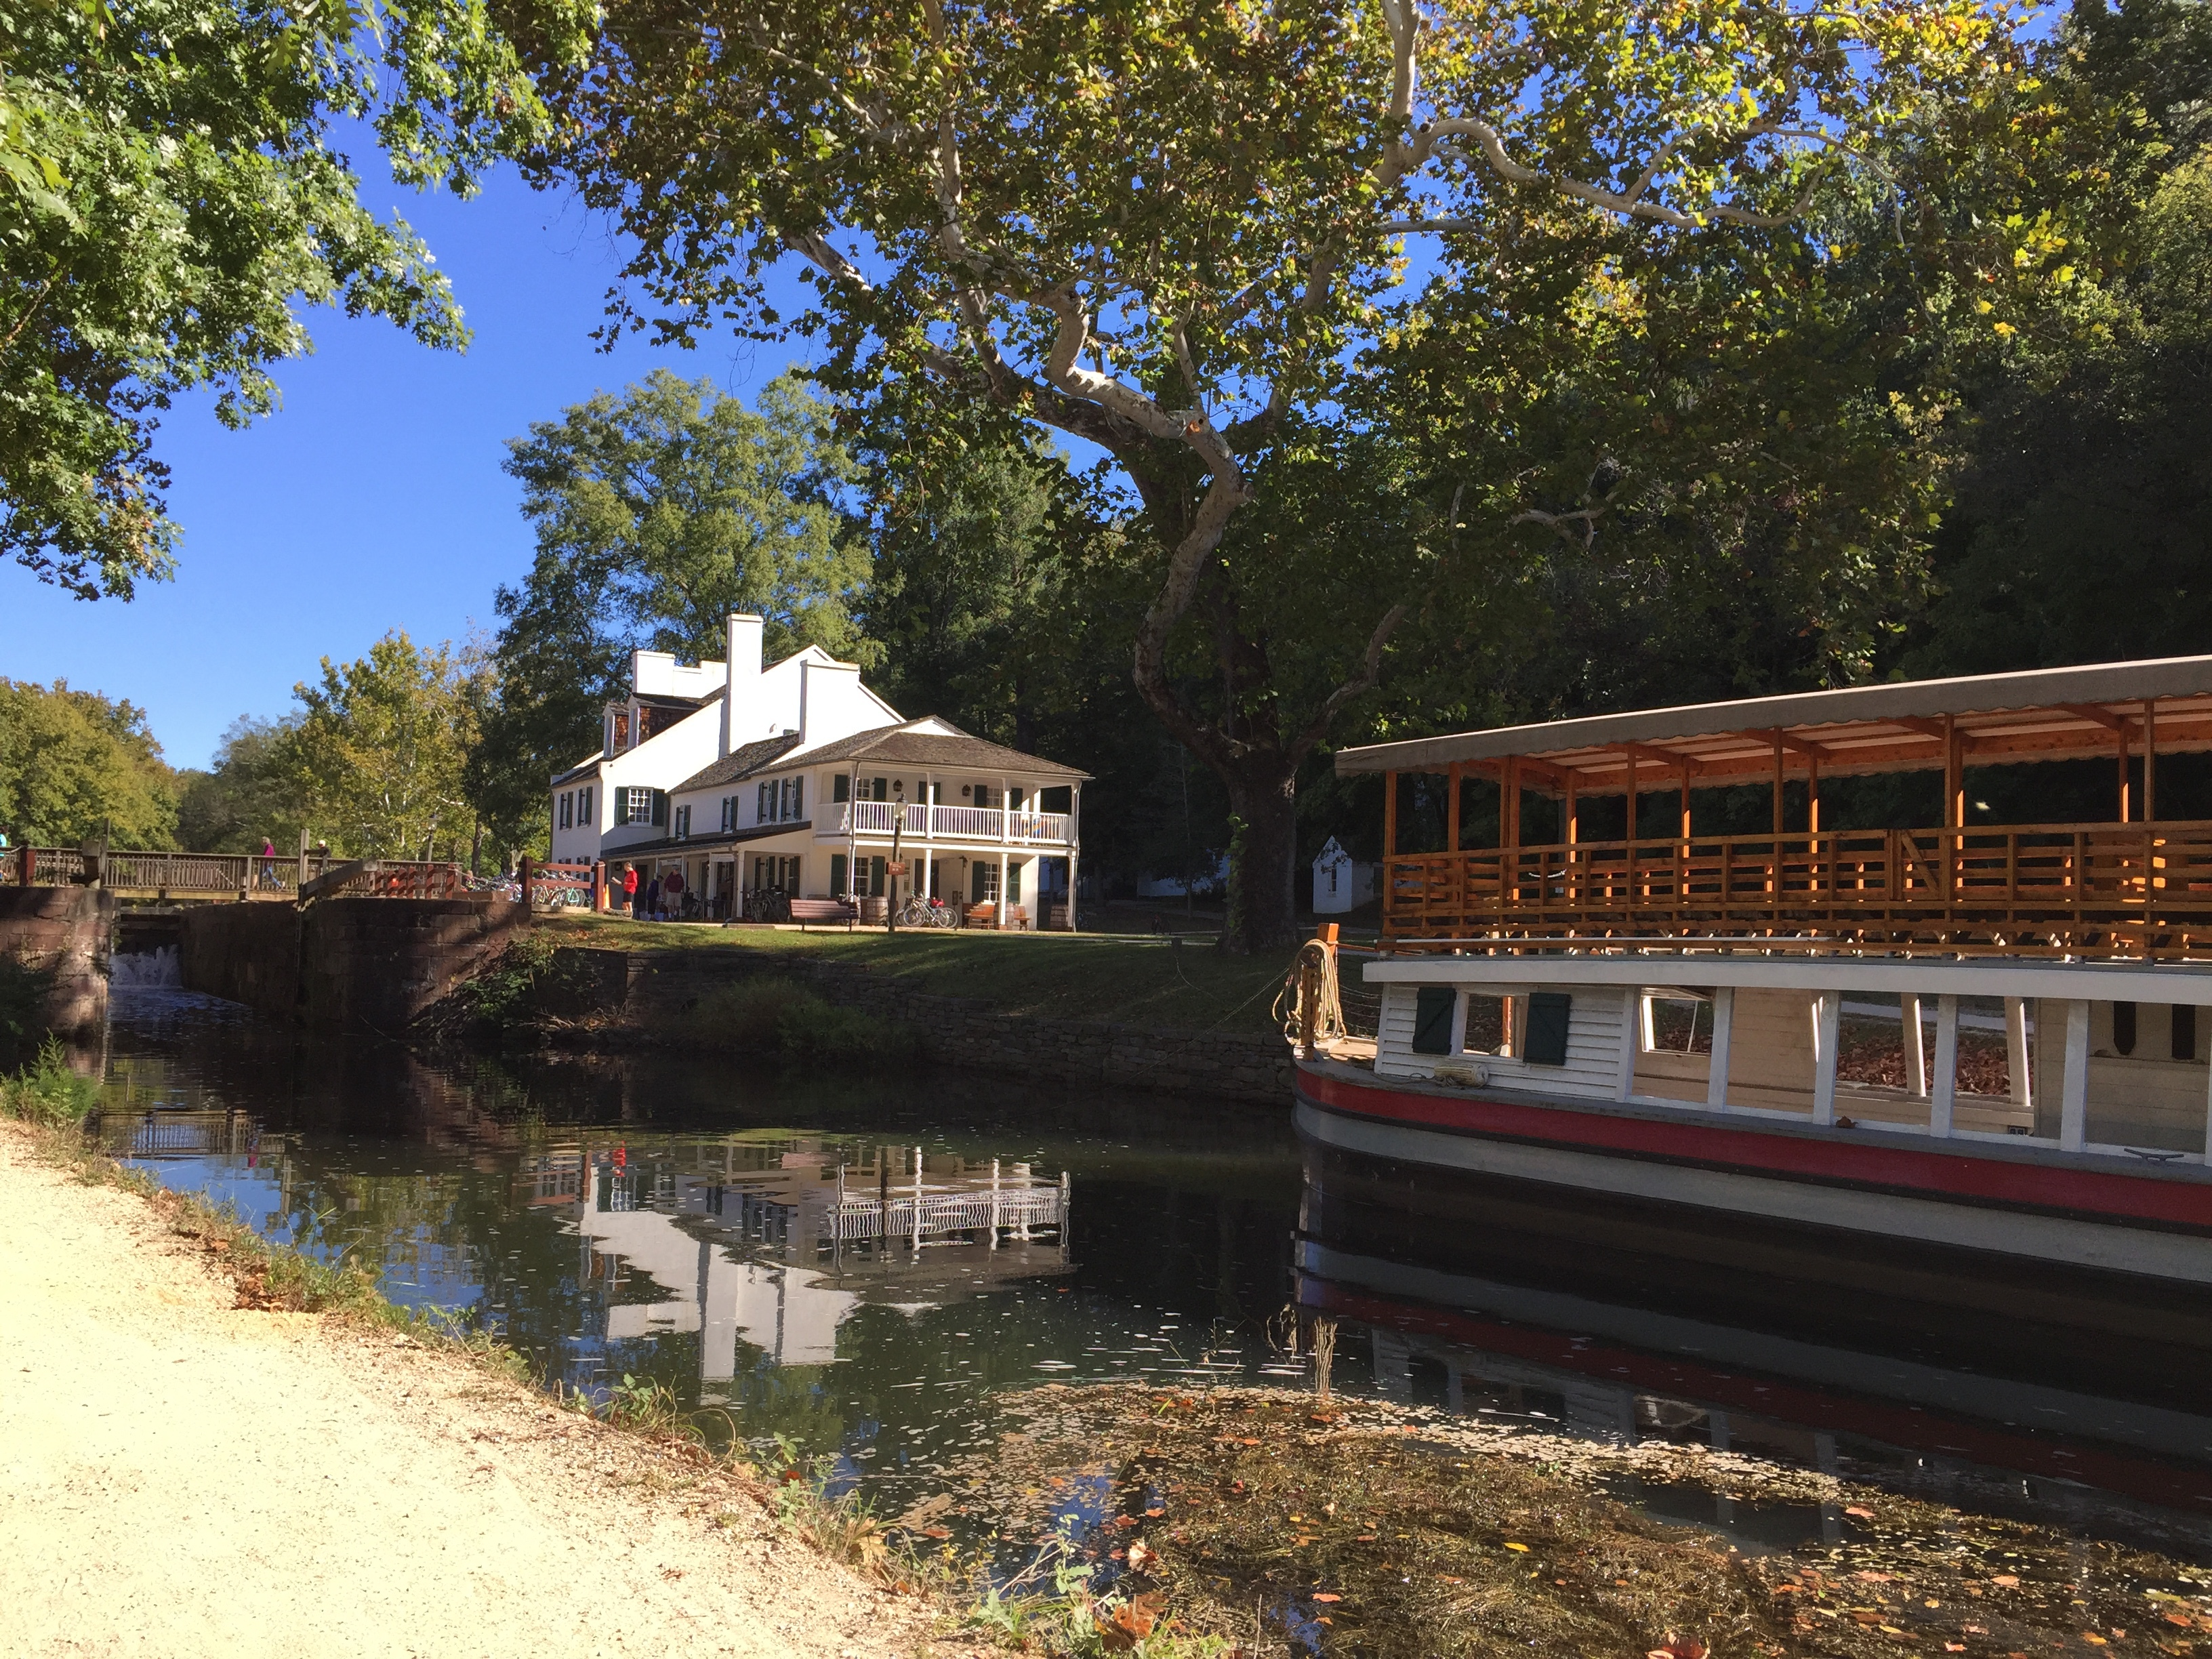 View of the Barge and Park Visitor Center by Lise Howe